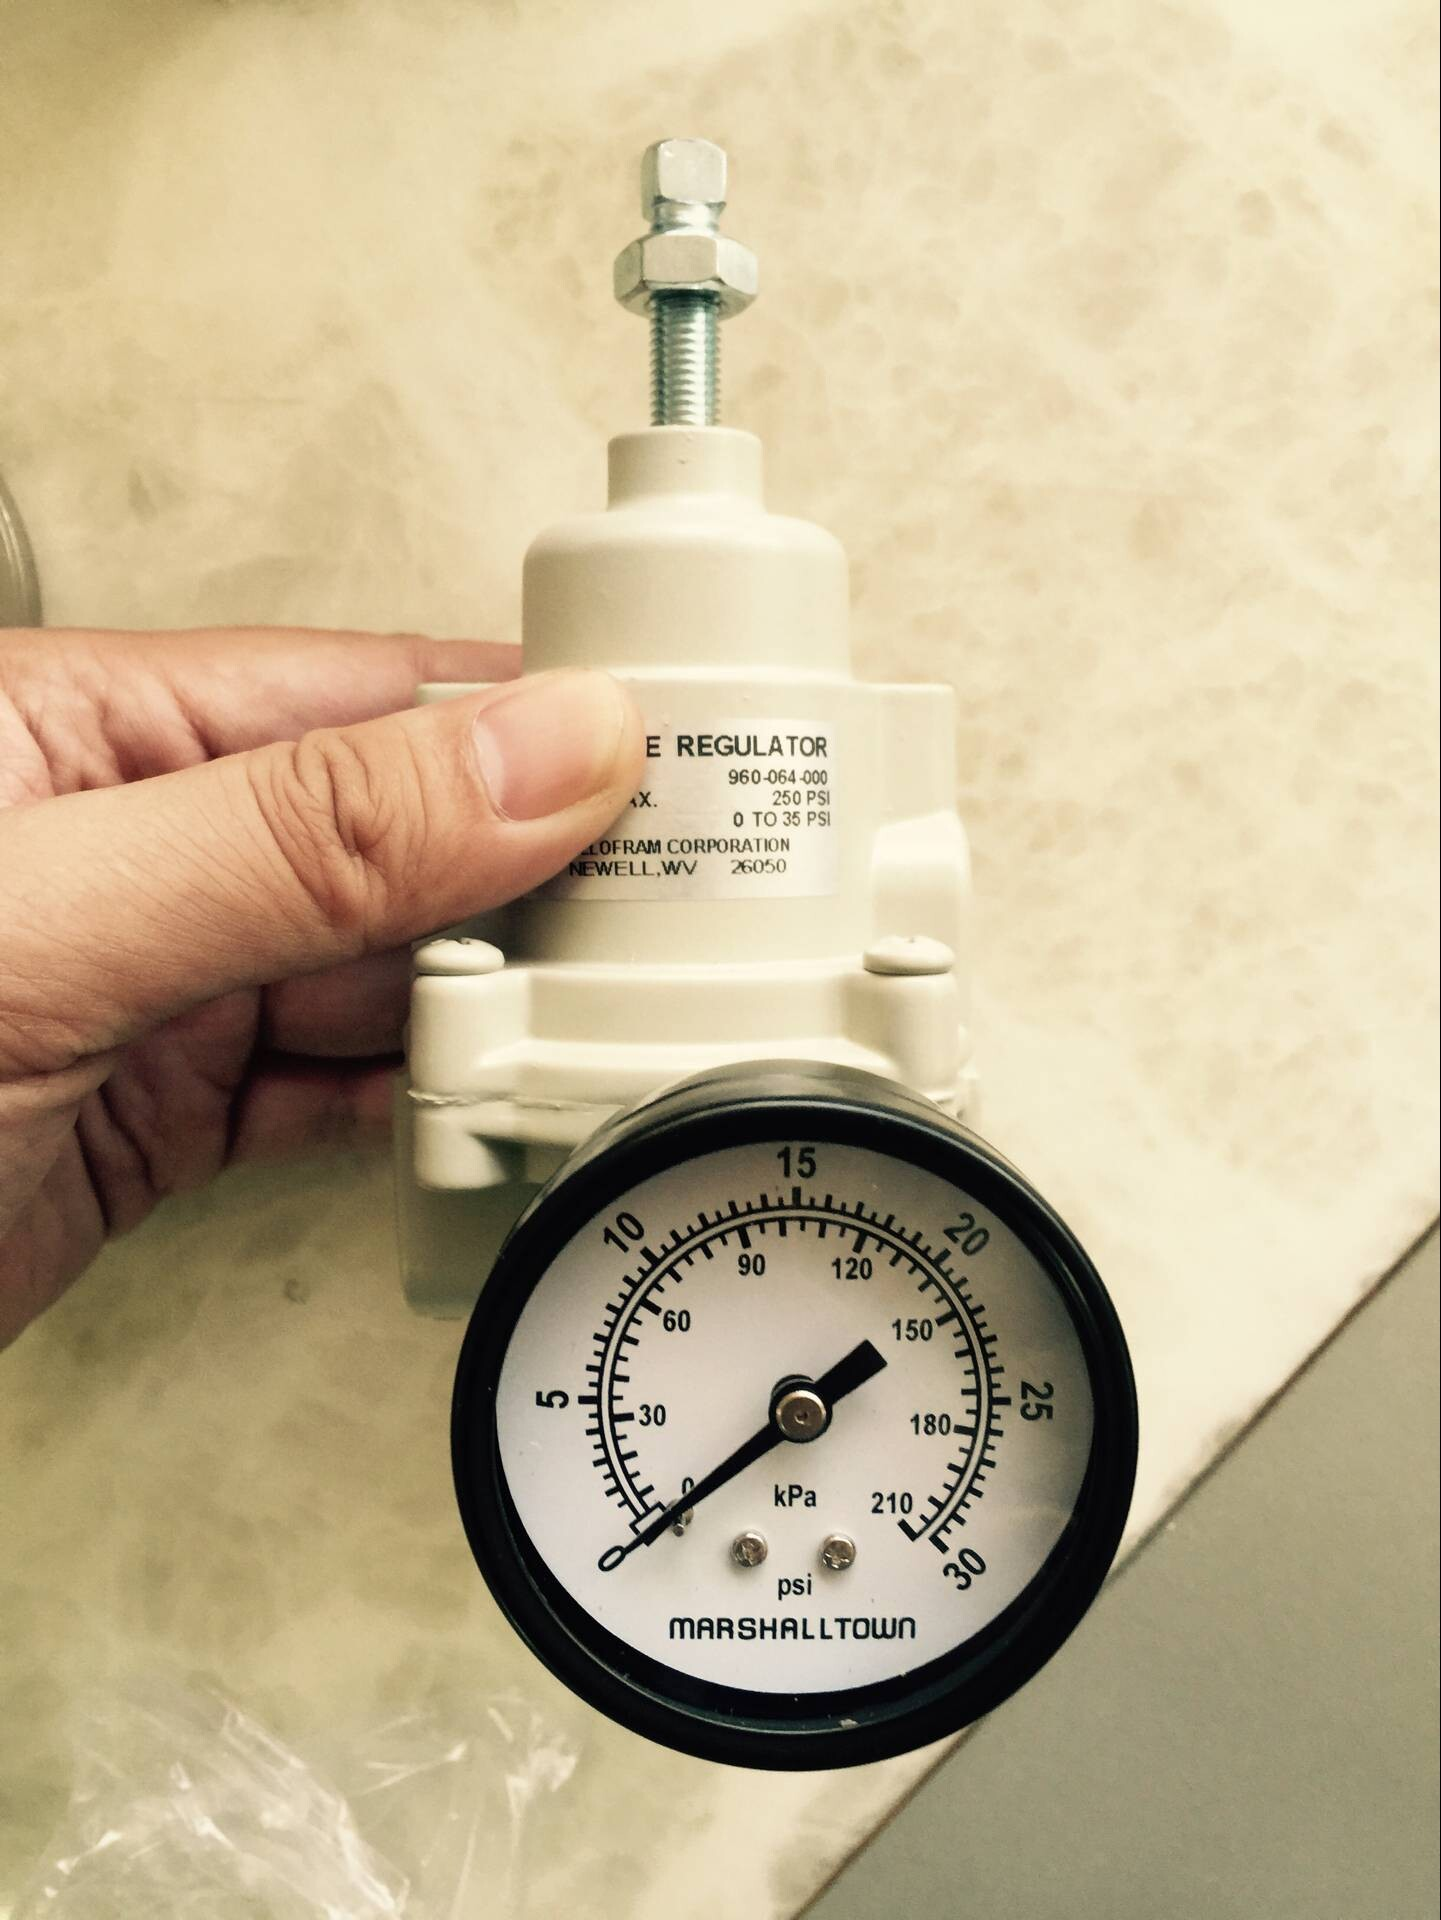 US BELLOFRAM valve 960-064-002 (without overflow without exhaust table) dn19 manual sanitary aseptic sampling valve